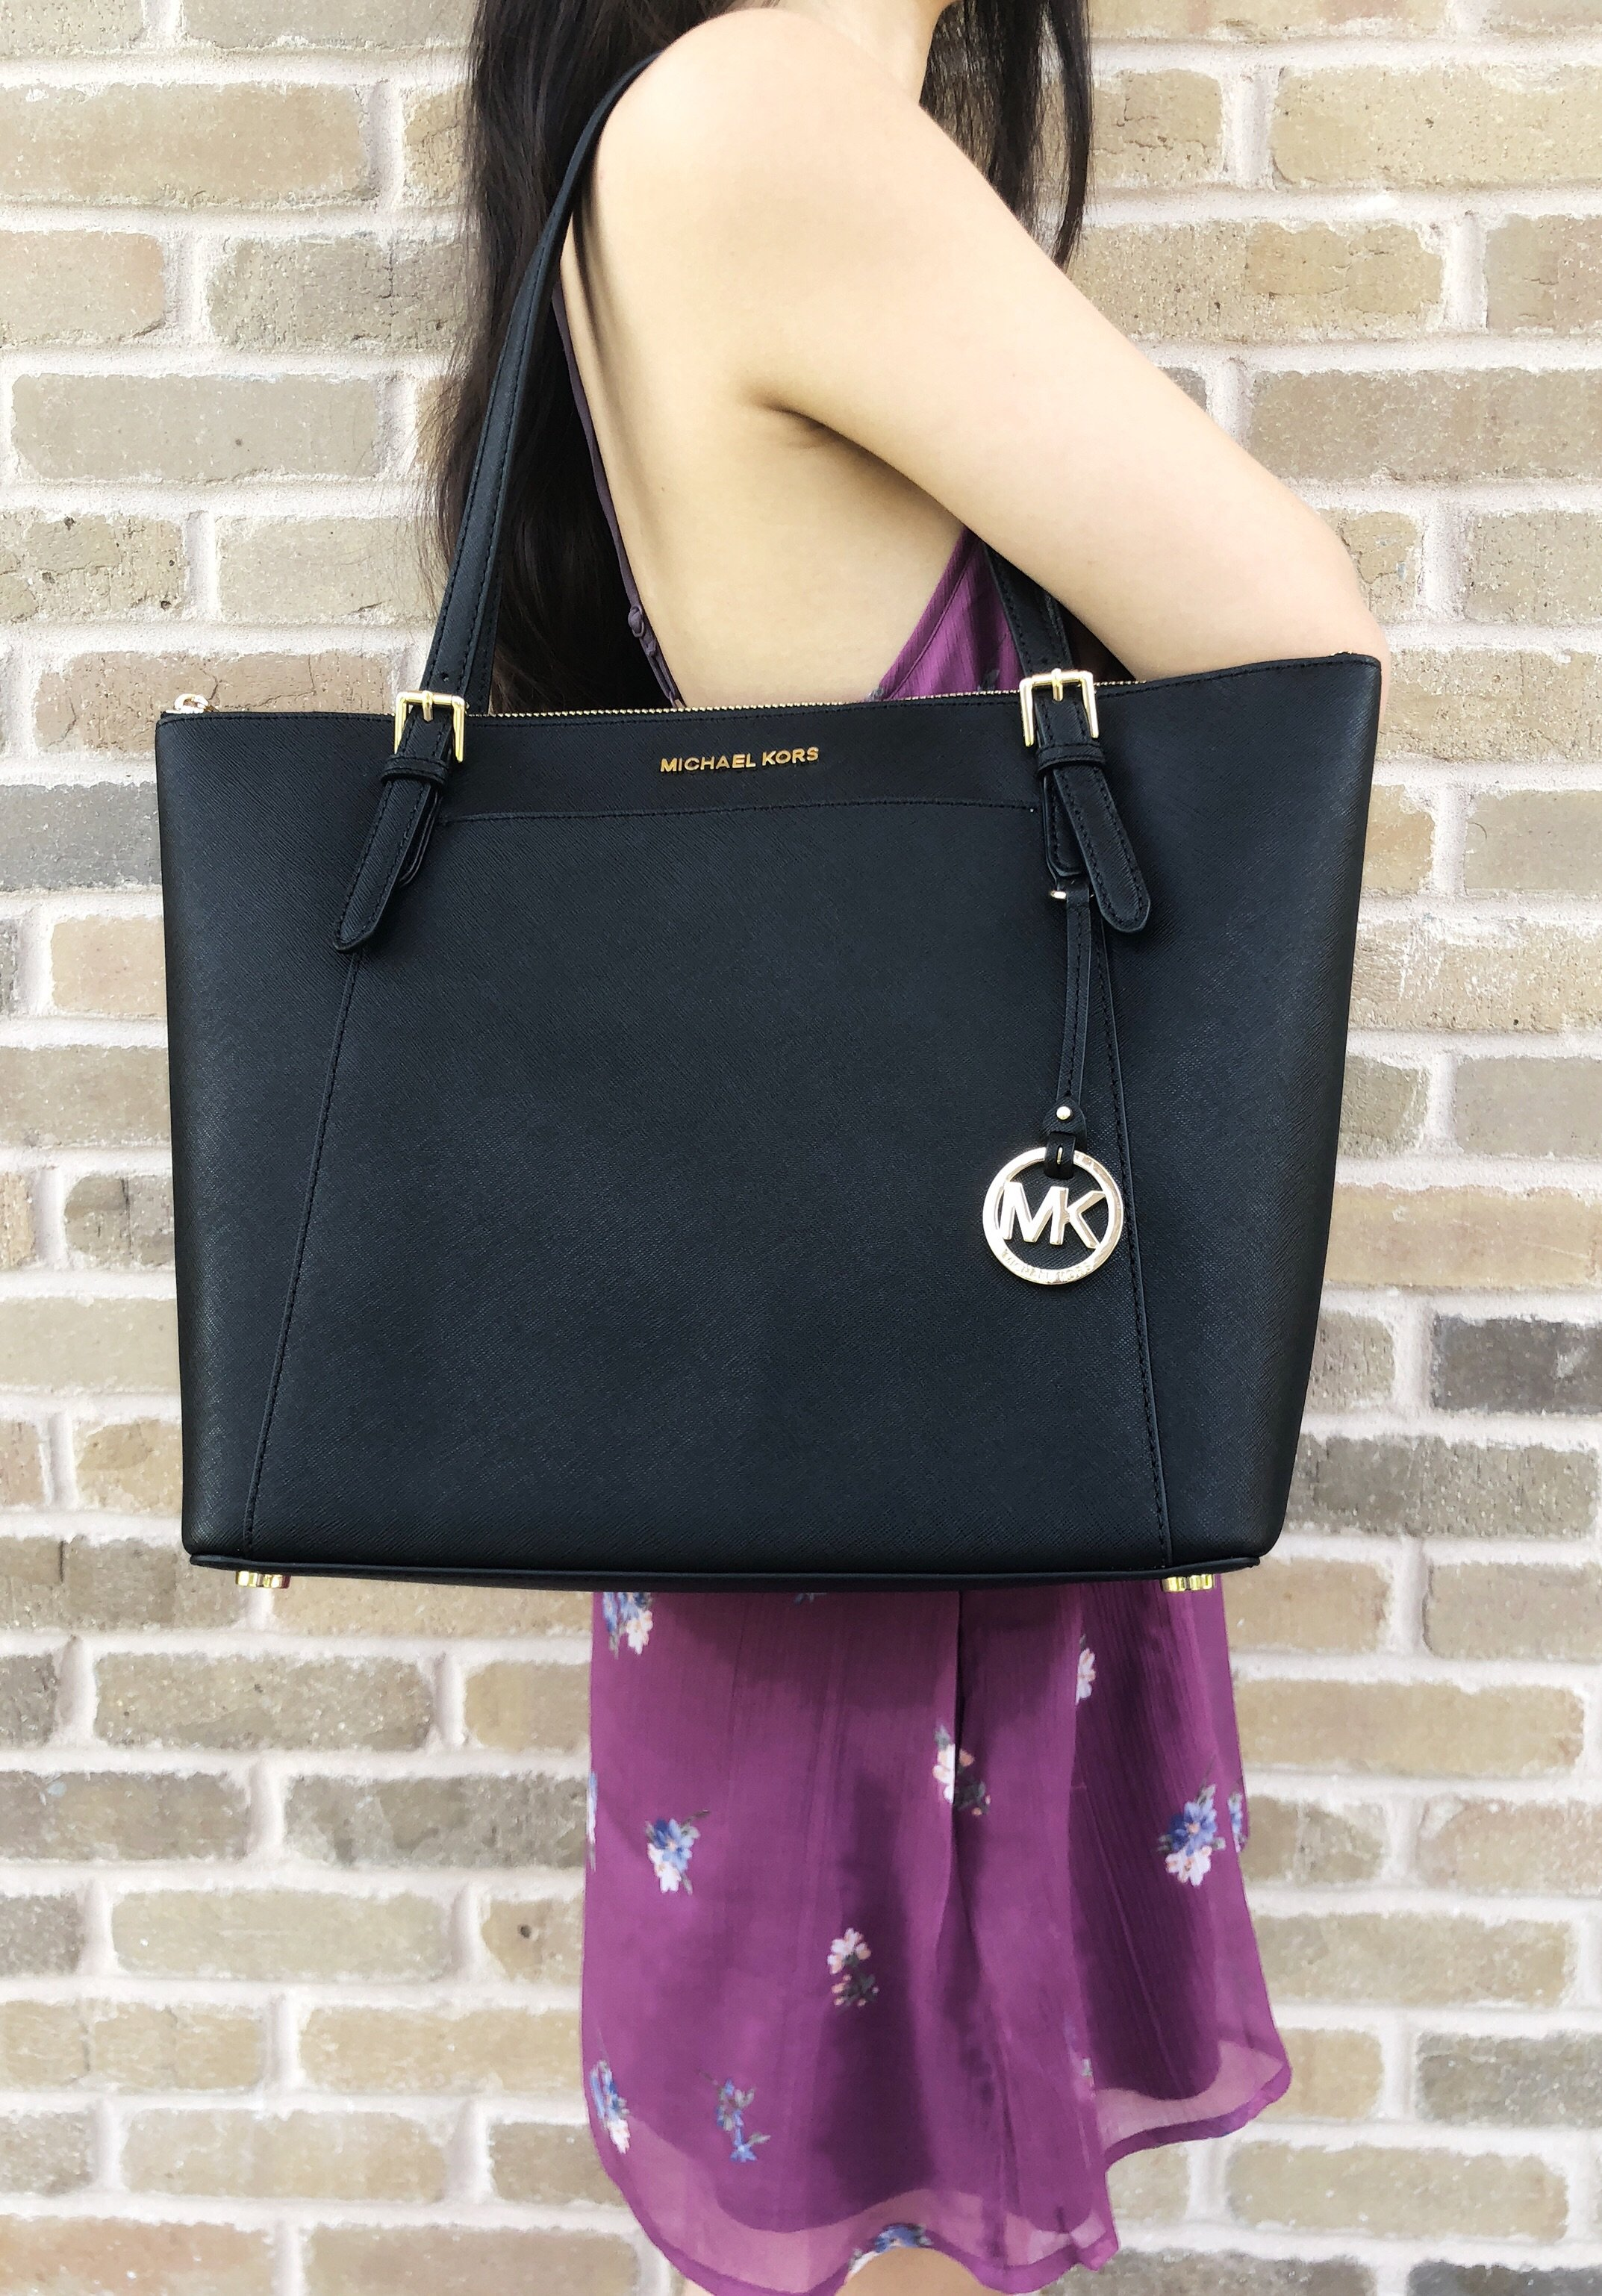 d250de3711f7 Michael Kors Ciara Large East West Top Zip Tote Black Saffiano ...